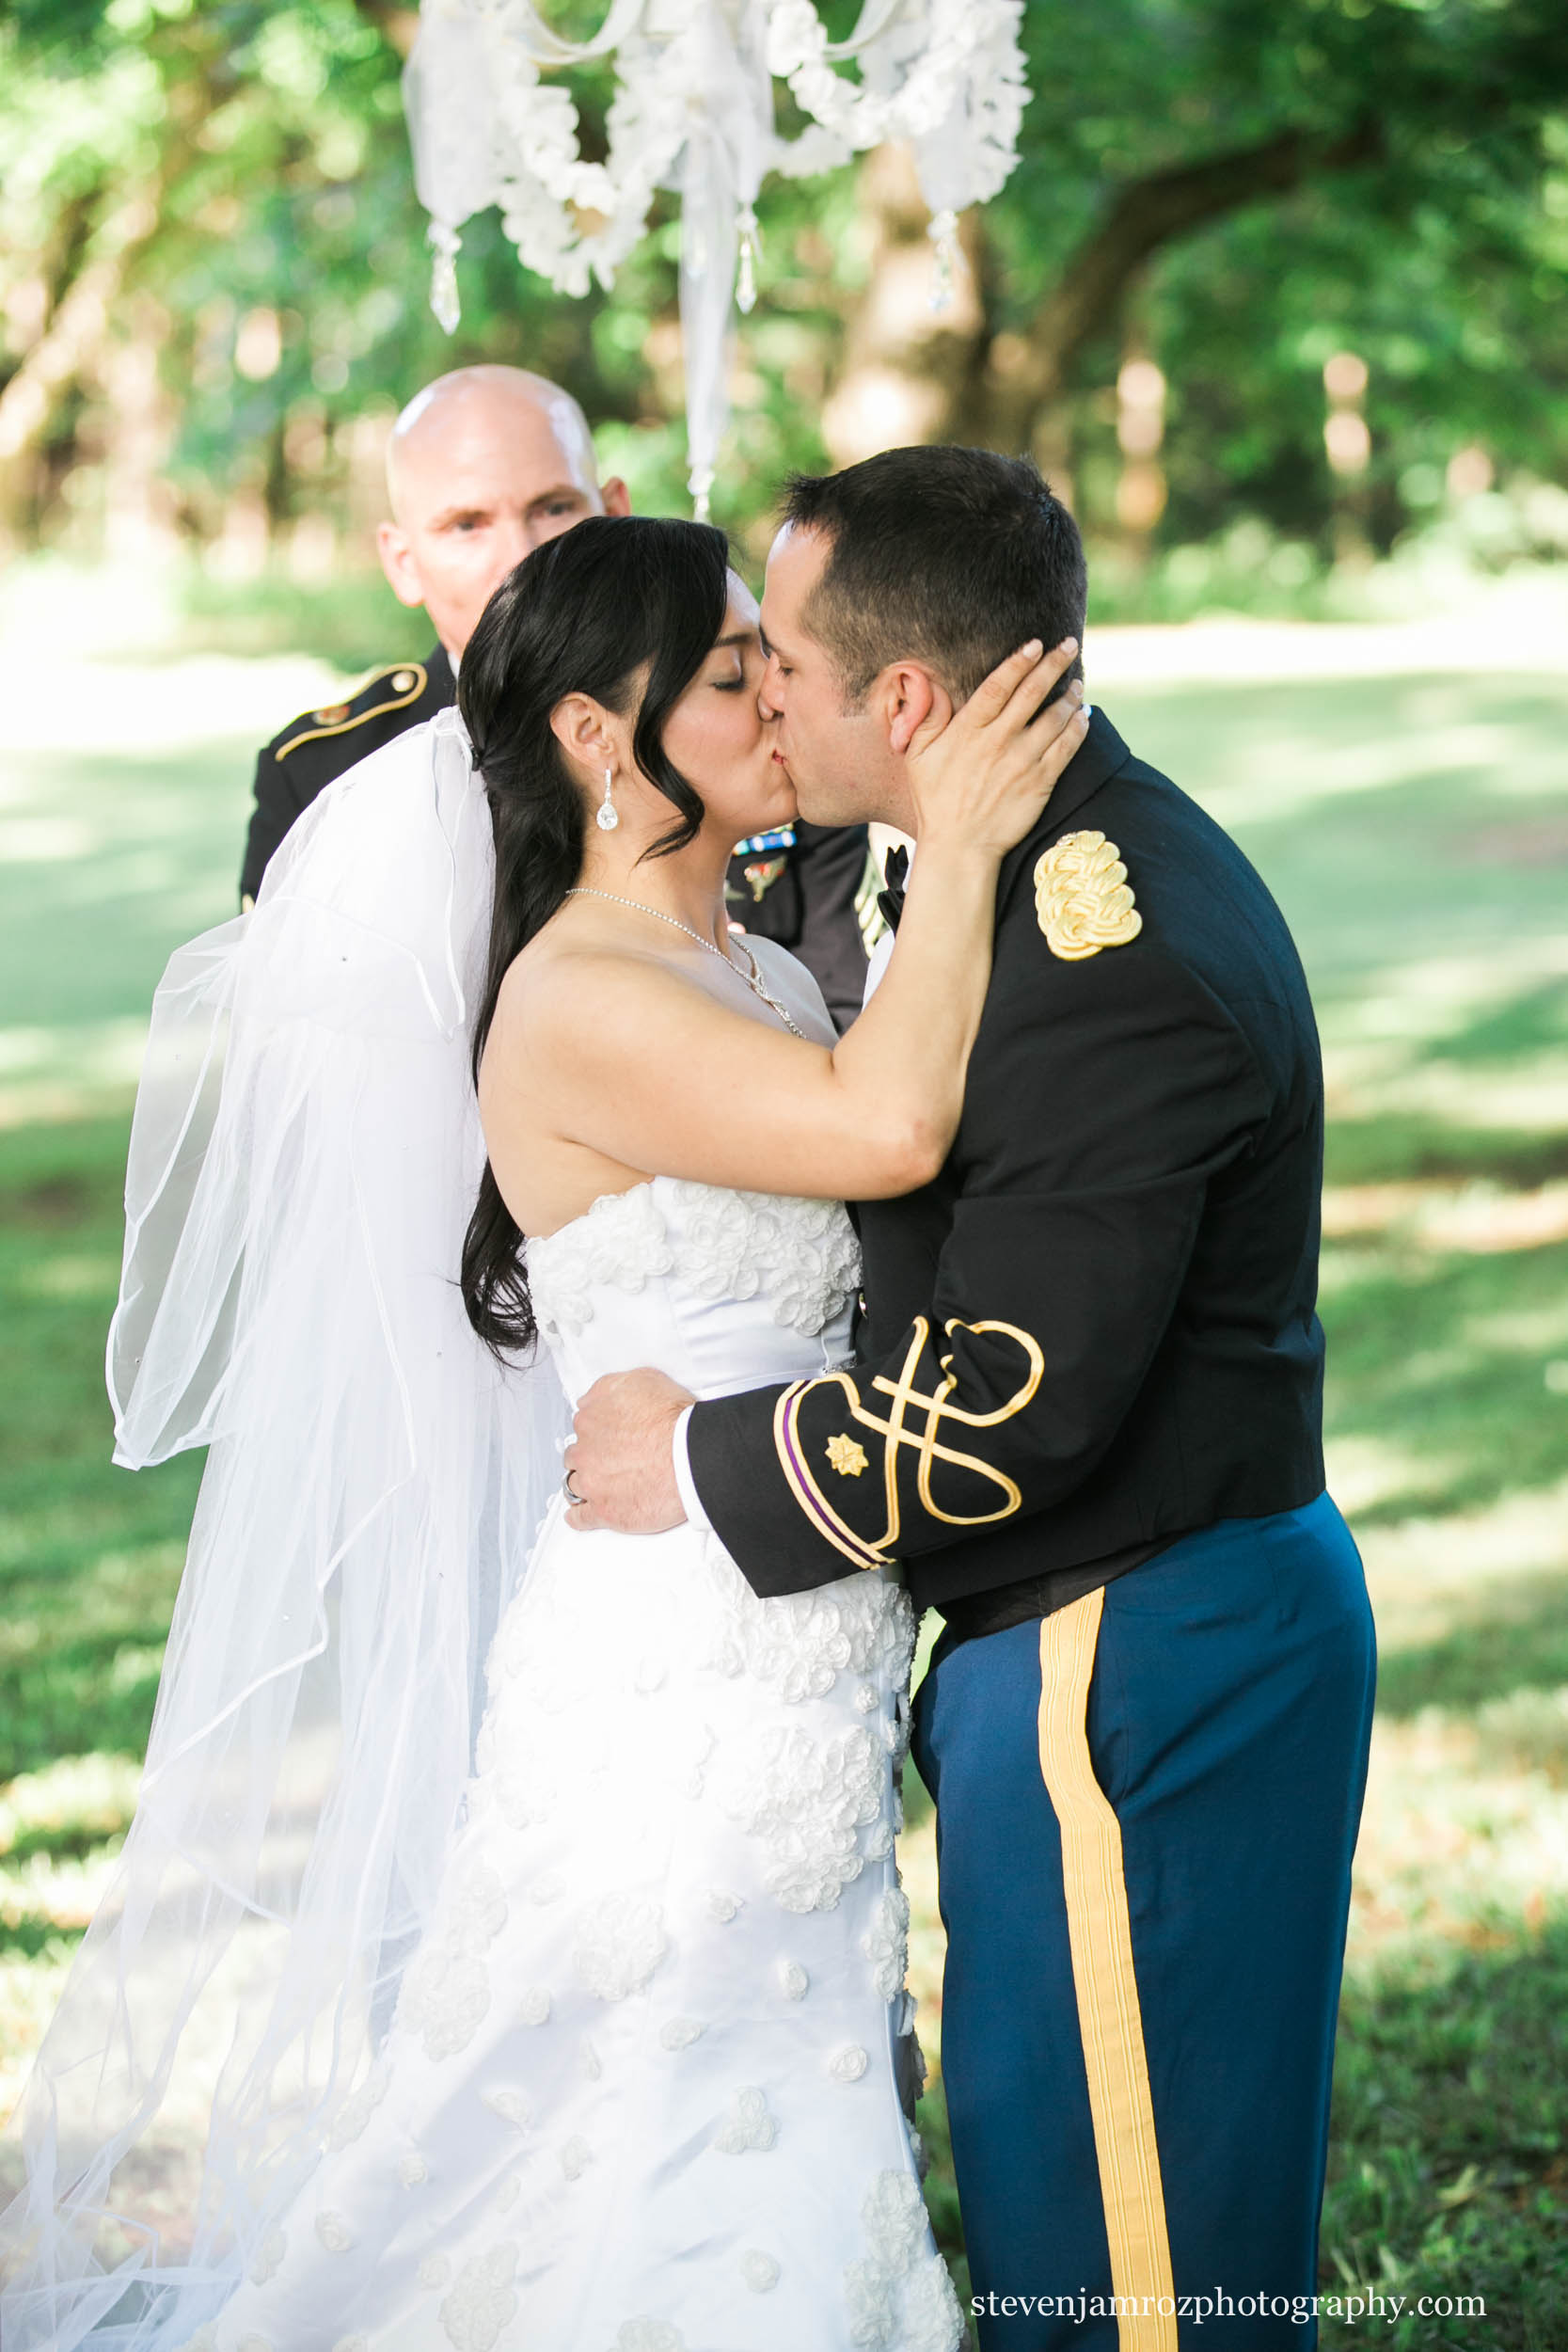 married-kiss-magnolia-manor-plantation-nc-steven-jamroz-photography-0209.jpg